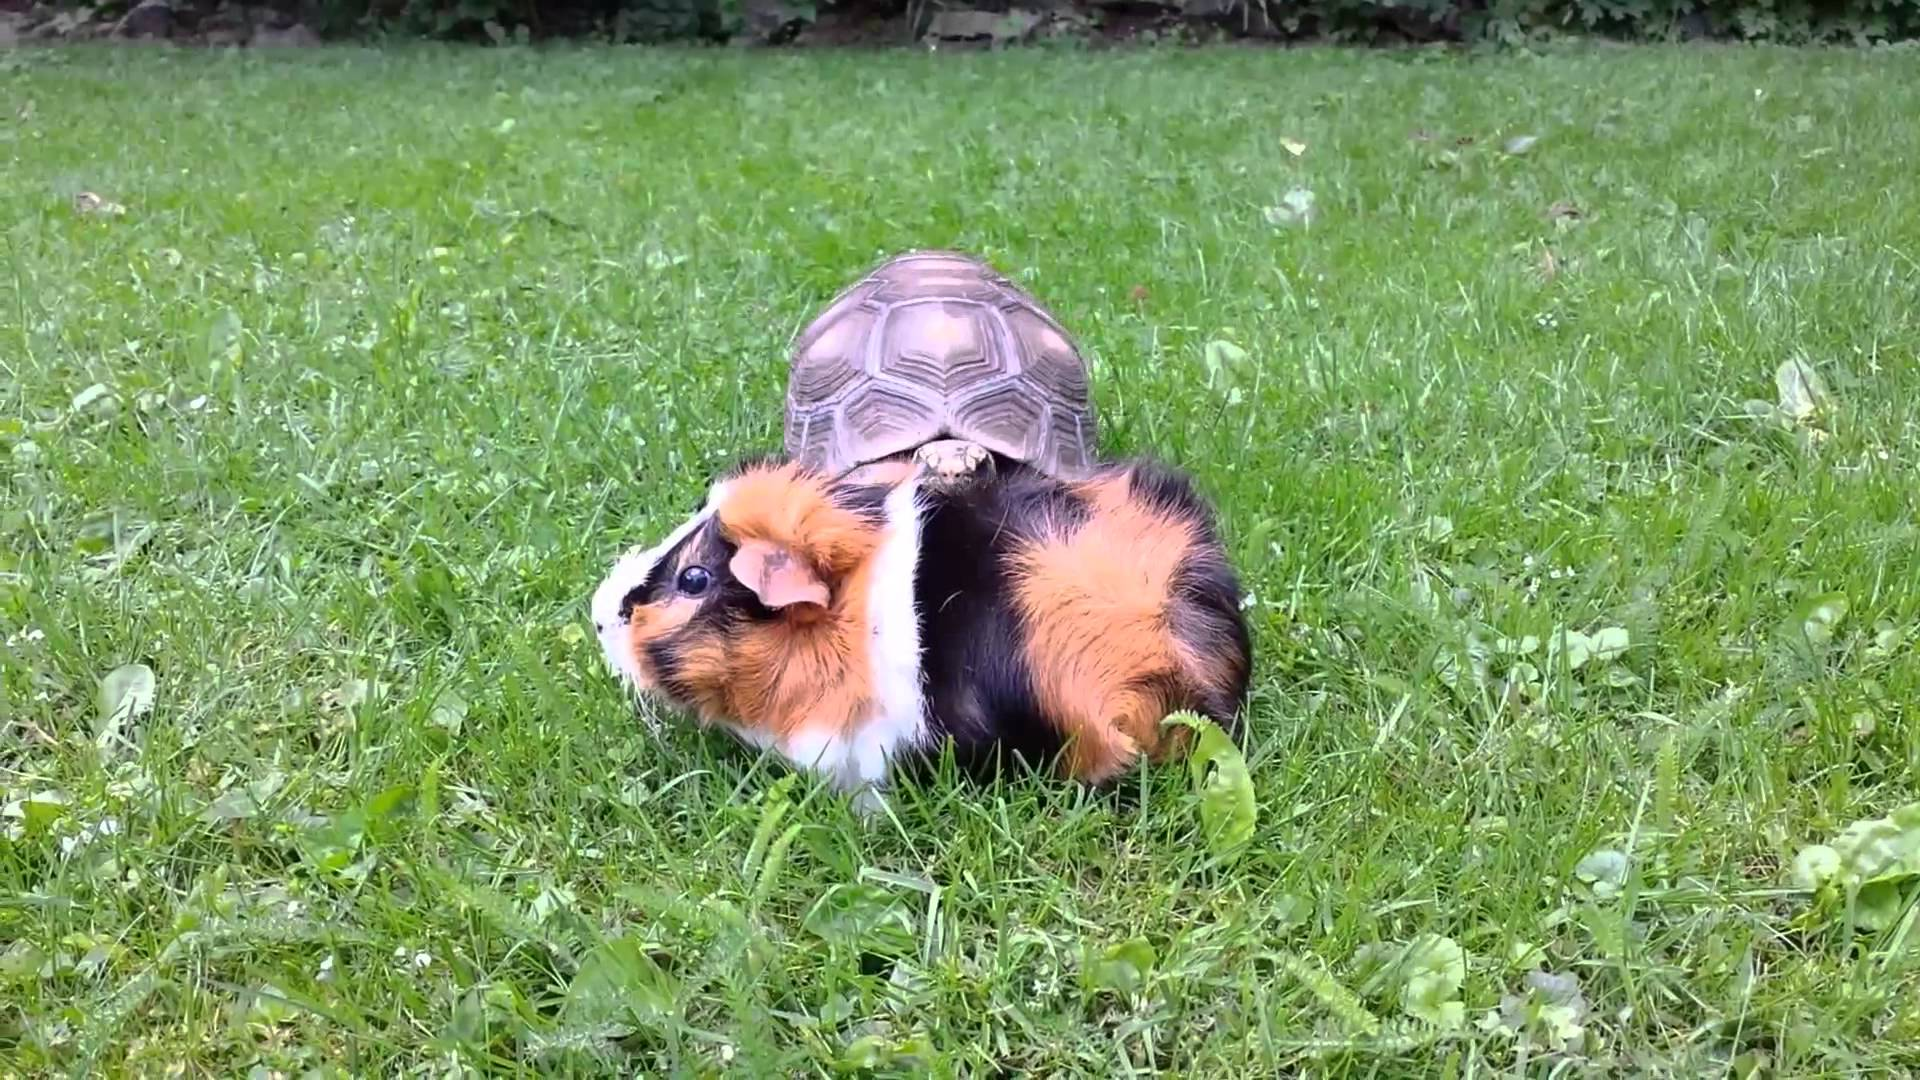 Fast-Moving Tortoise Sneaks Up On Nervous Guinea Pig